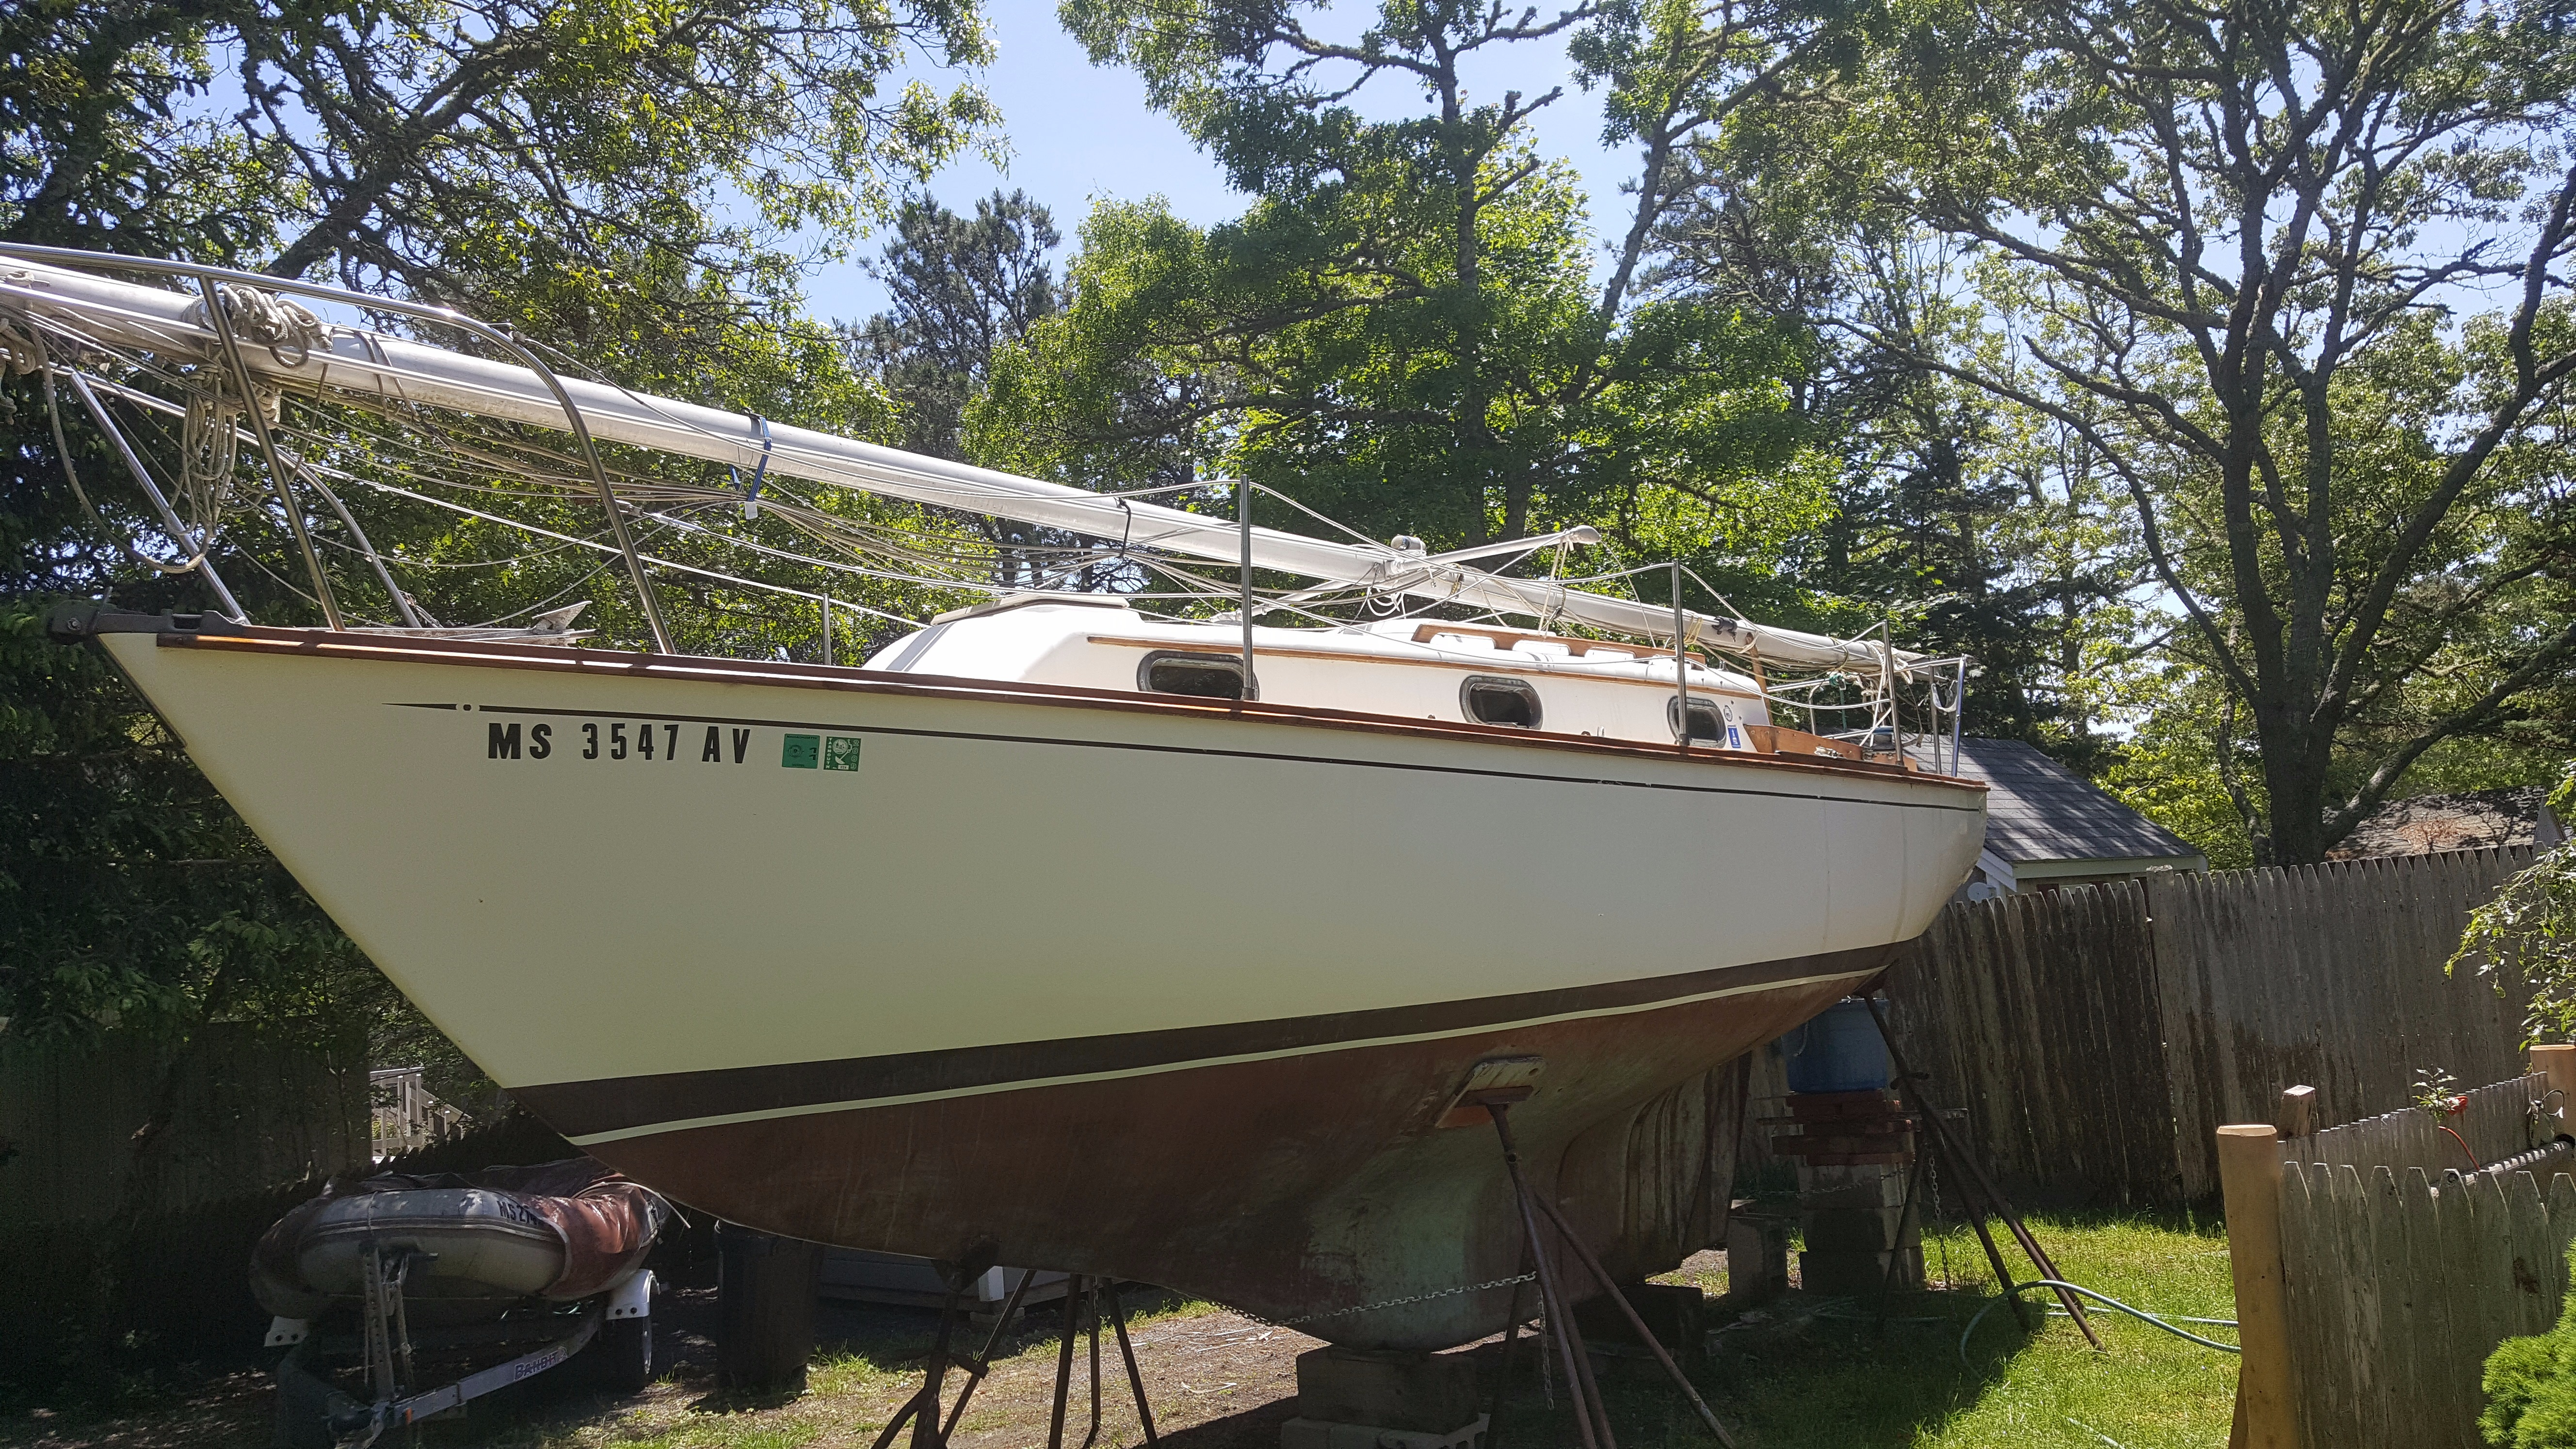 Used 1974 C&C YACHTS 25 Sailboat, Salt Lake City, Ut - 84115